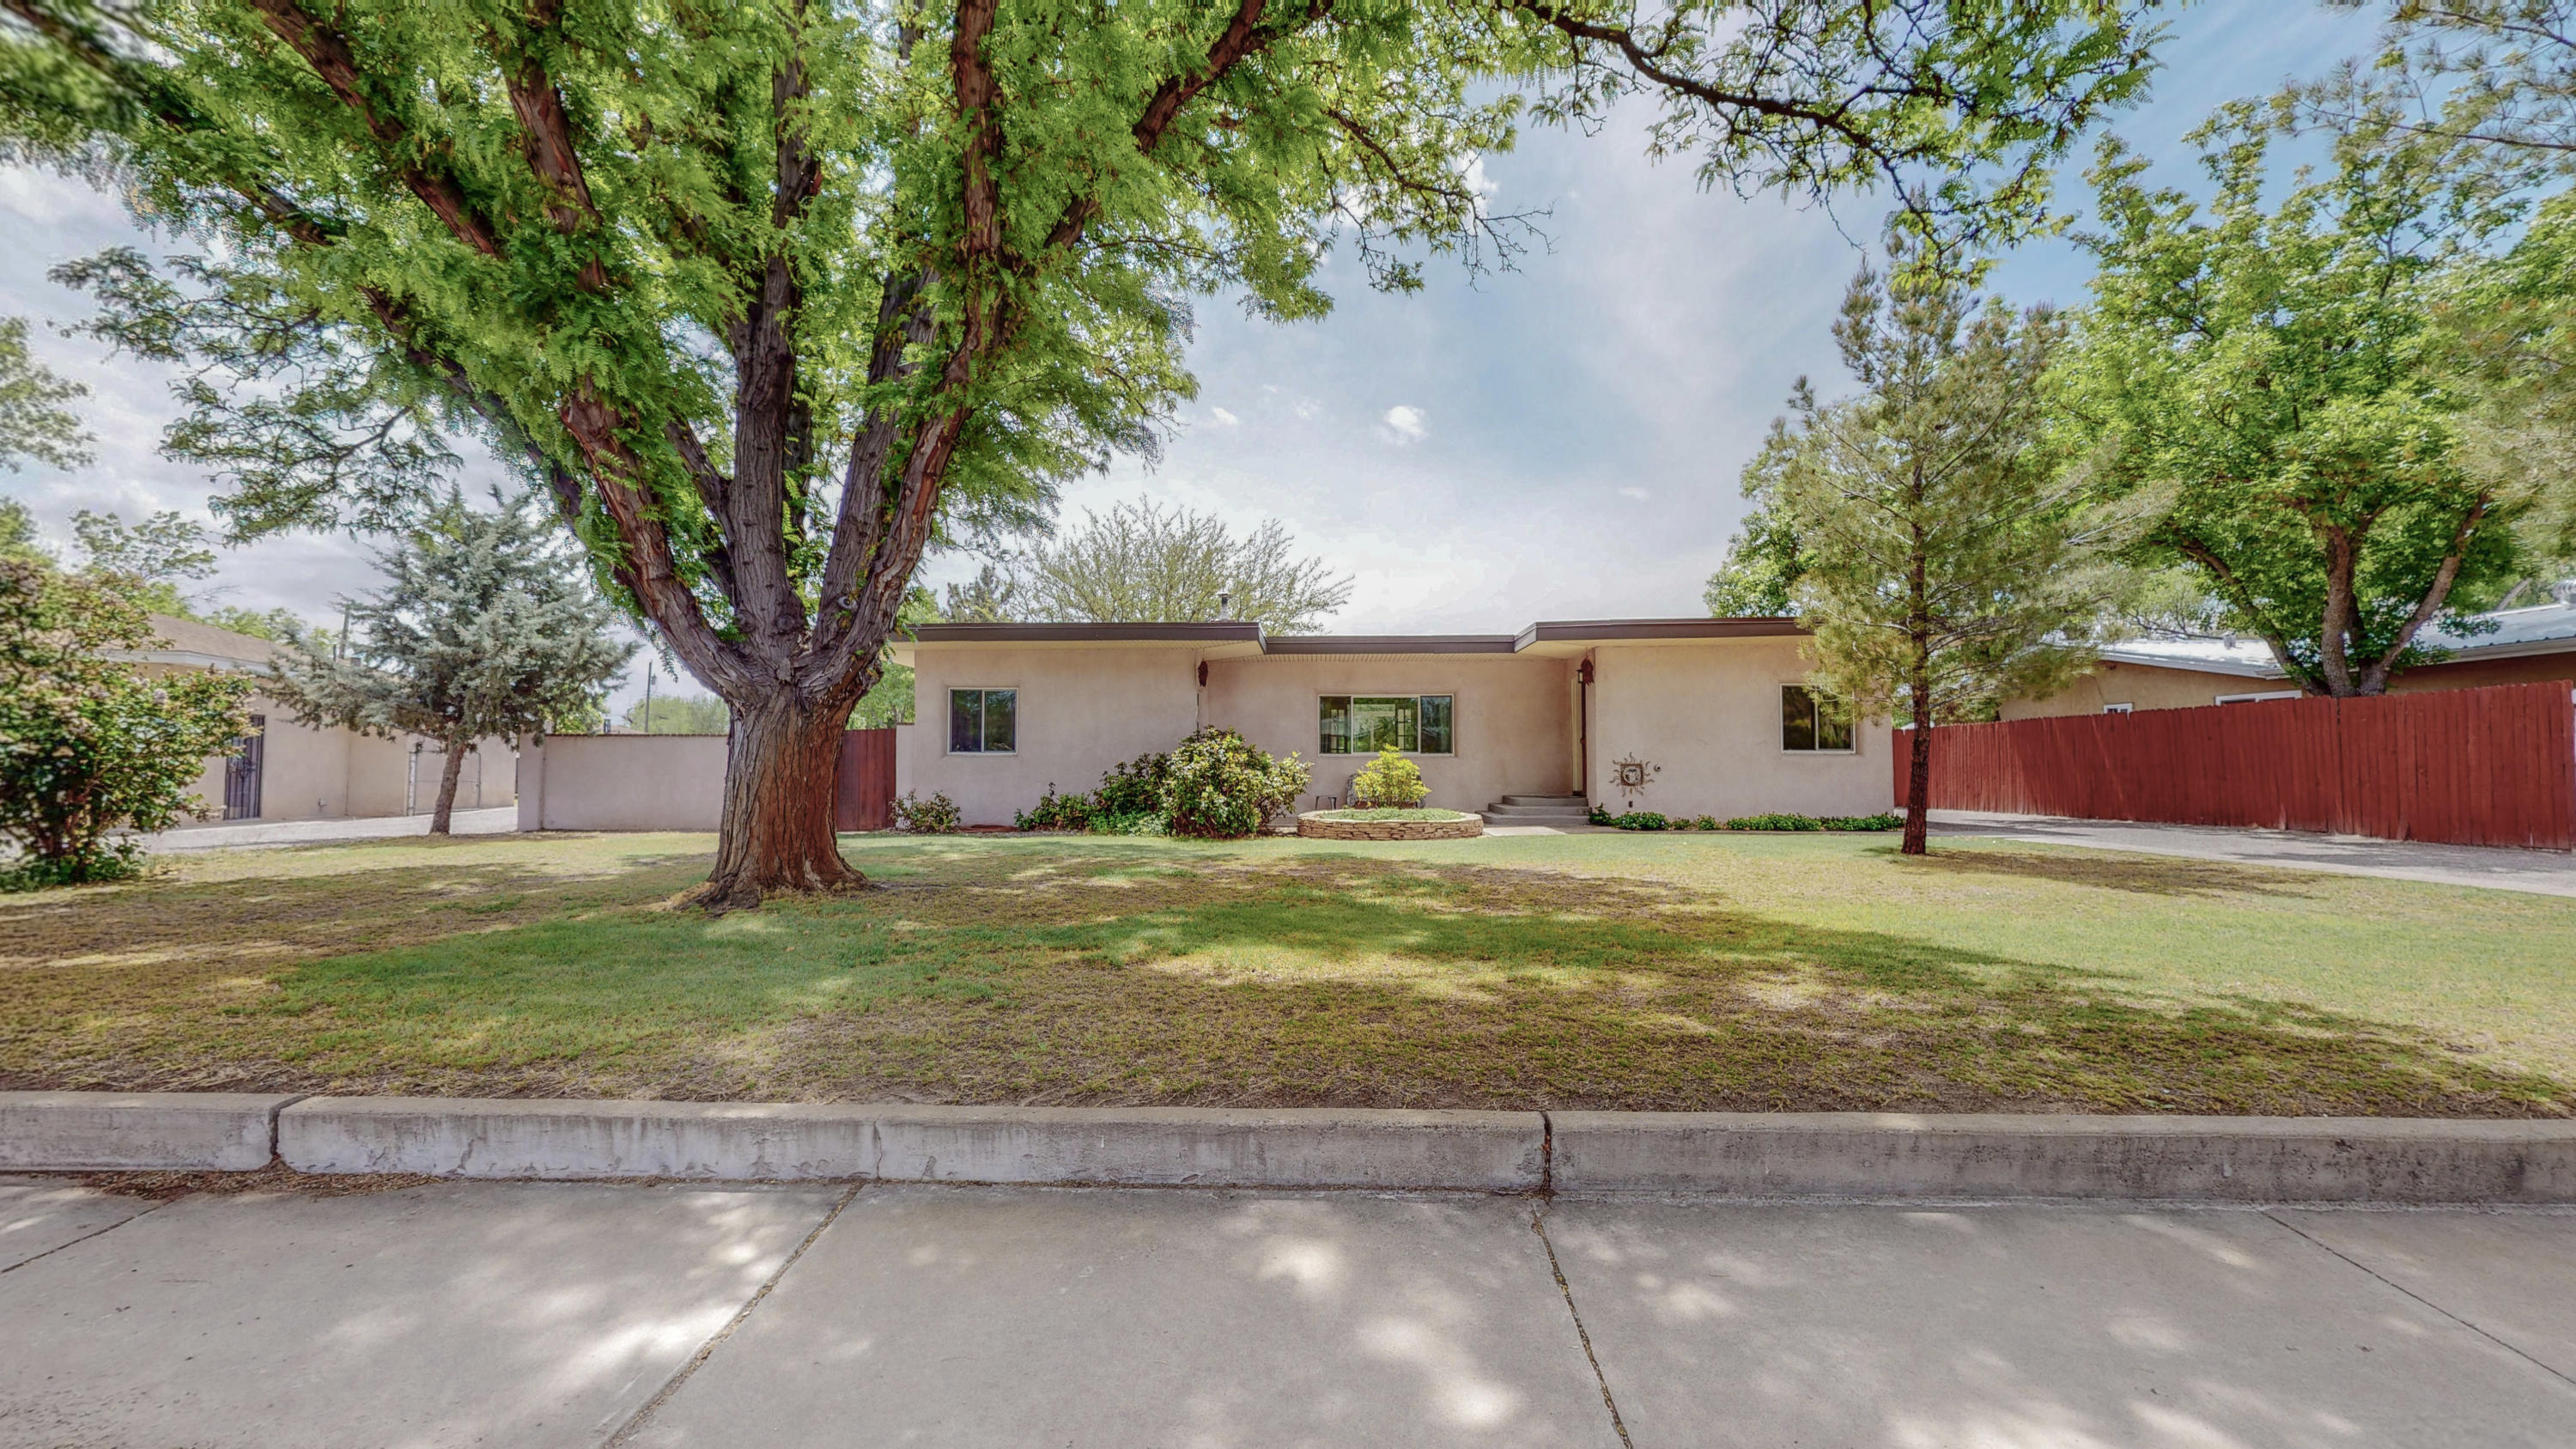 Beautiful home and property!! On almost 3/4 of an acre. Well maintained...with hard wood, tile, & travertine floors, granite kitchen countertop, open floorplan, huge windows, drive-thru garage, storage shed/workshop, hot tub, owned solar, irrigation well, and with backyard access. The possibilities with this home are endless! OPEN HOUSE on Saturday from 10 am-noon.